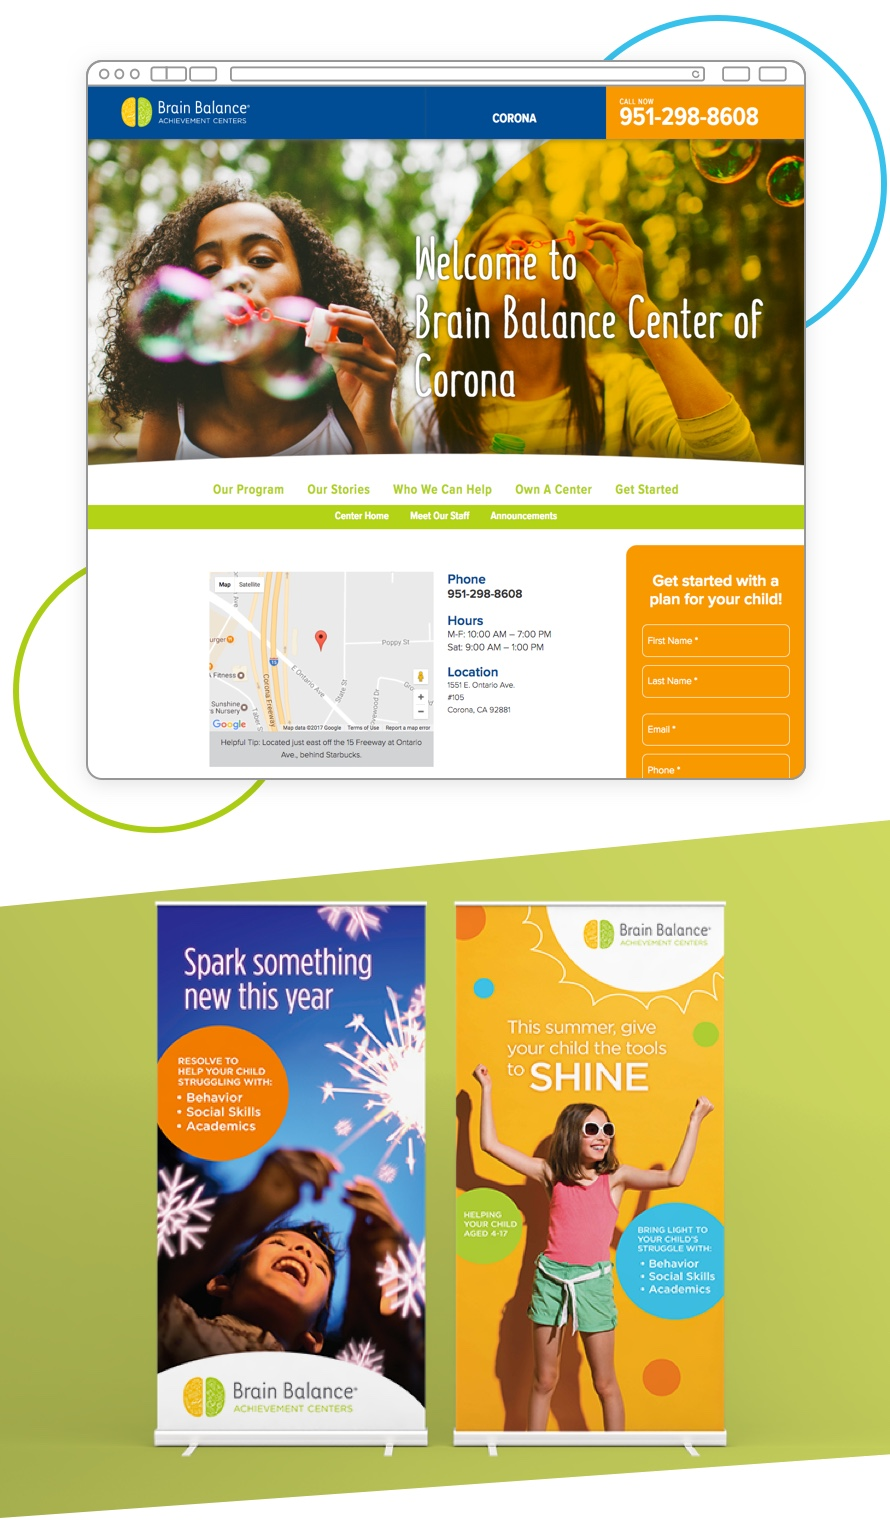 A view of the Brain Balance website and a brochure